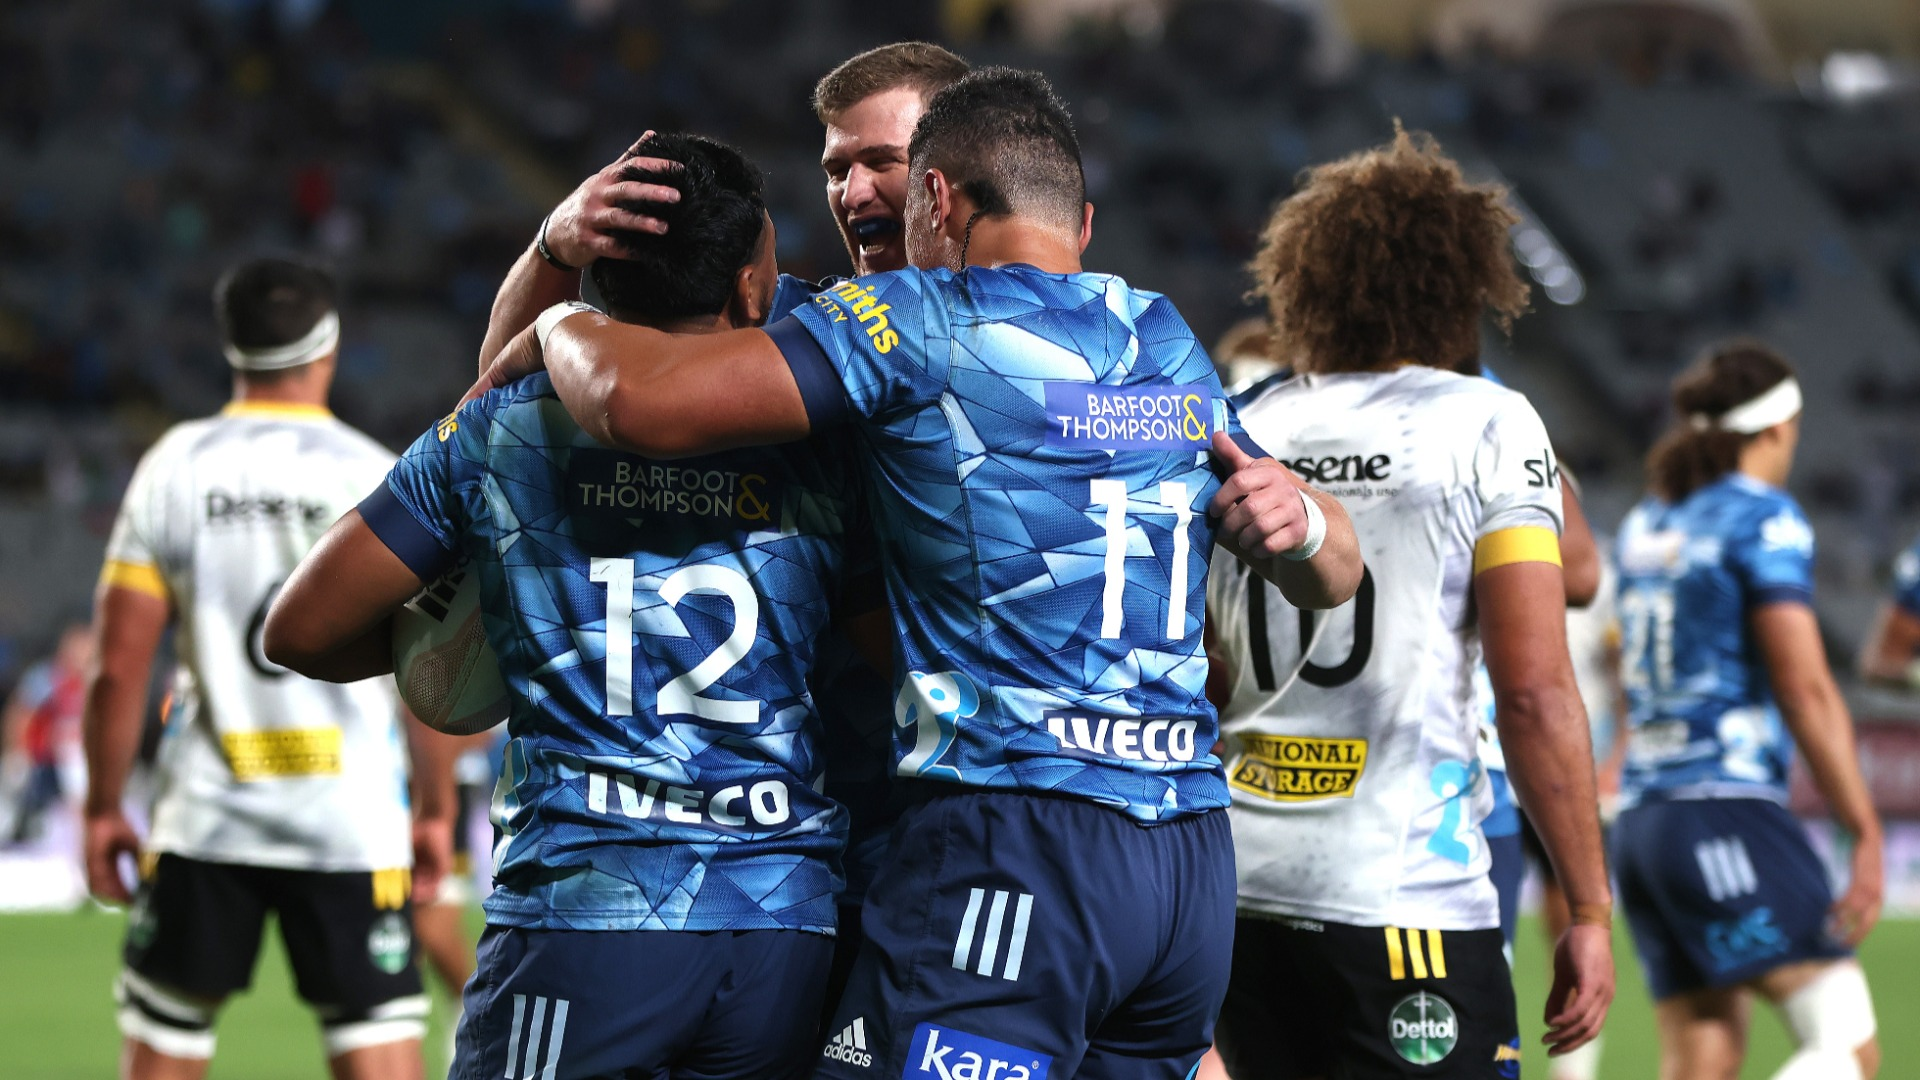 After suffering back-to-back defeats, the Blues responded with a much-needed win over the Hurricanes in Auckland.